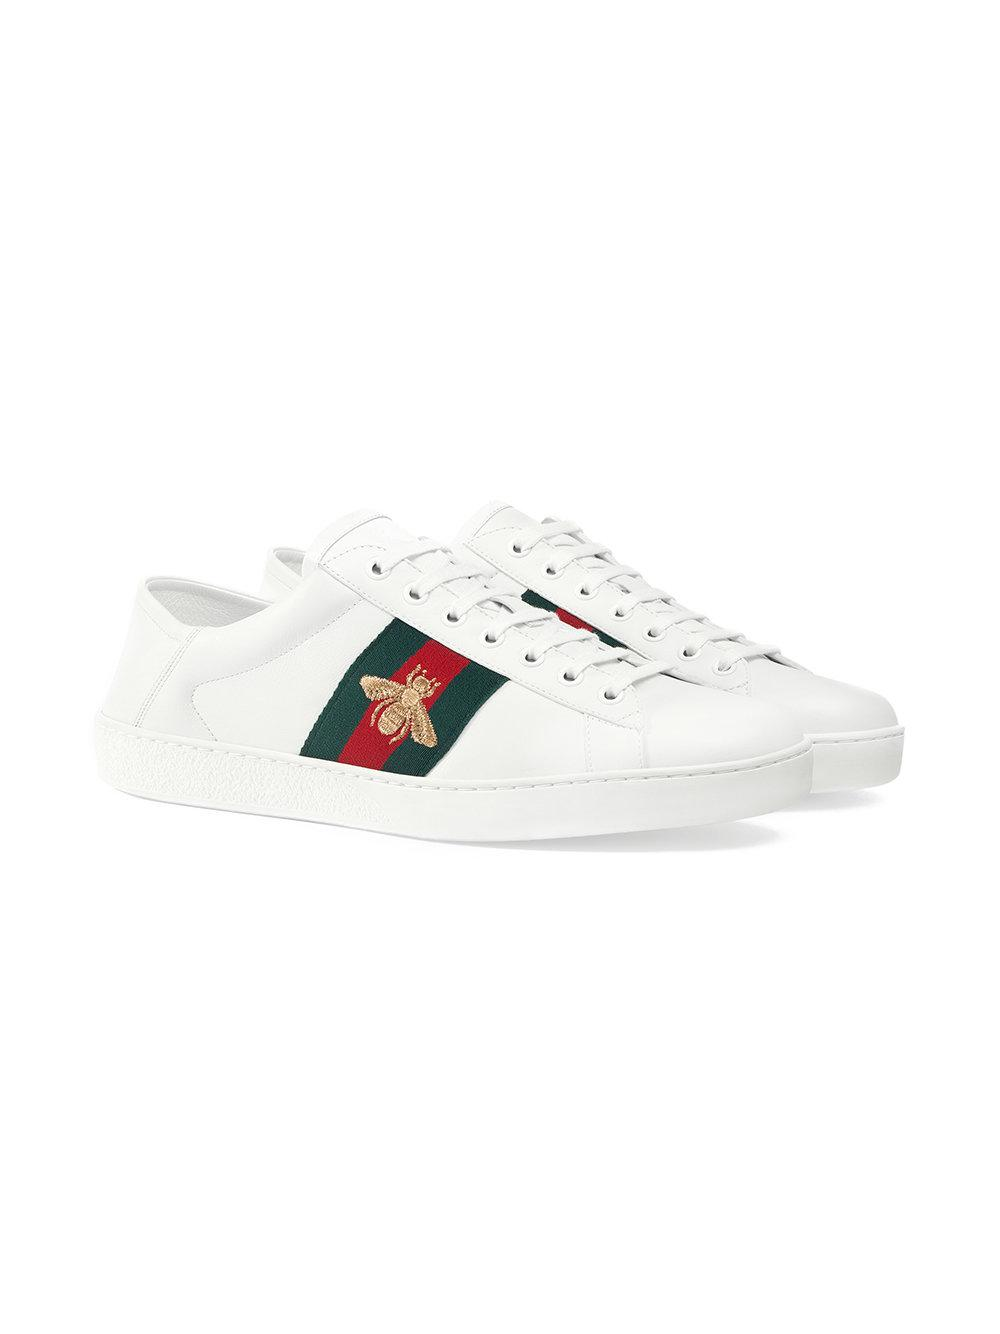 03b6abbd9ca Lyst - Gucci Ace Sneaker in White for Men